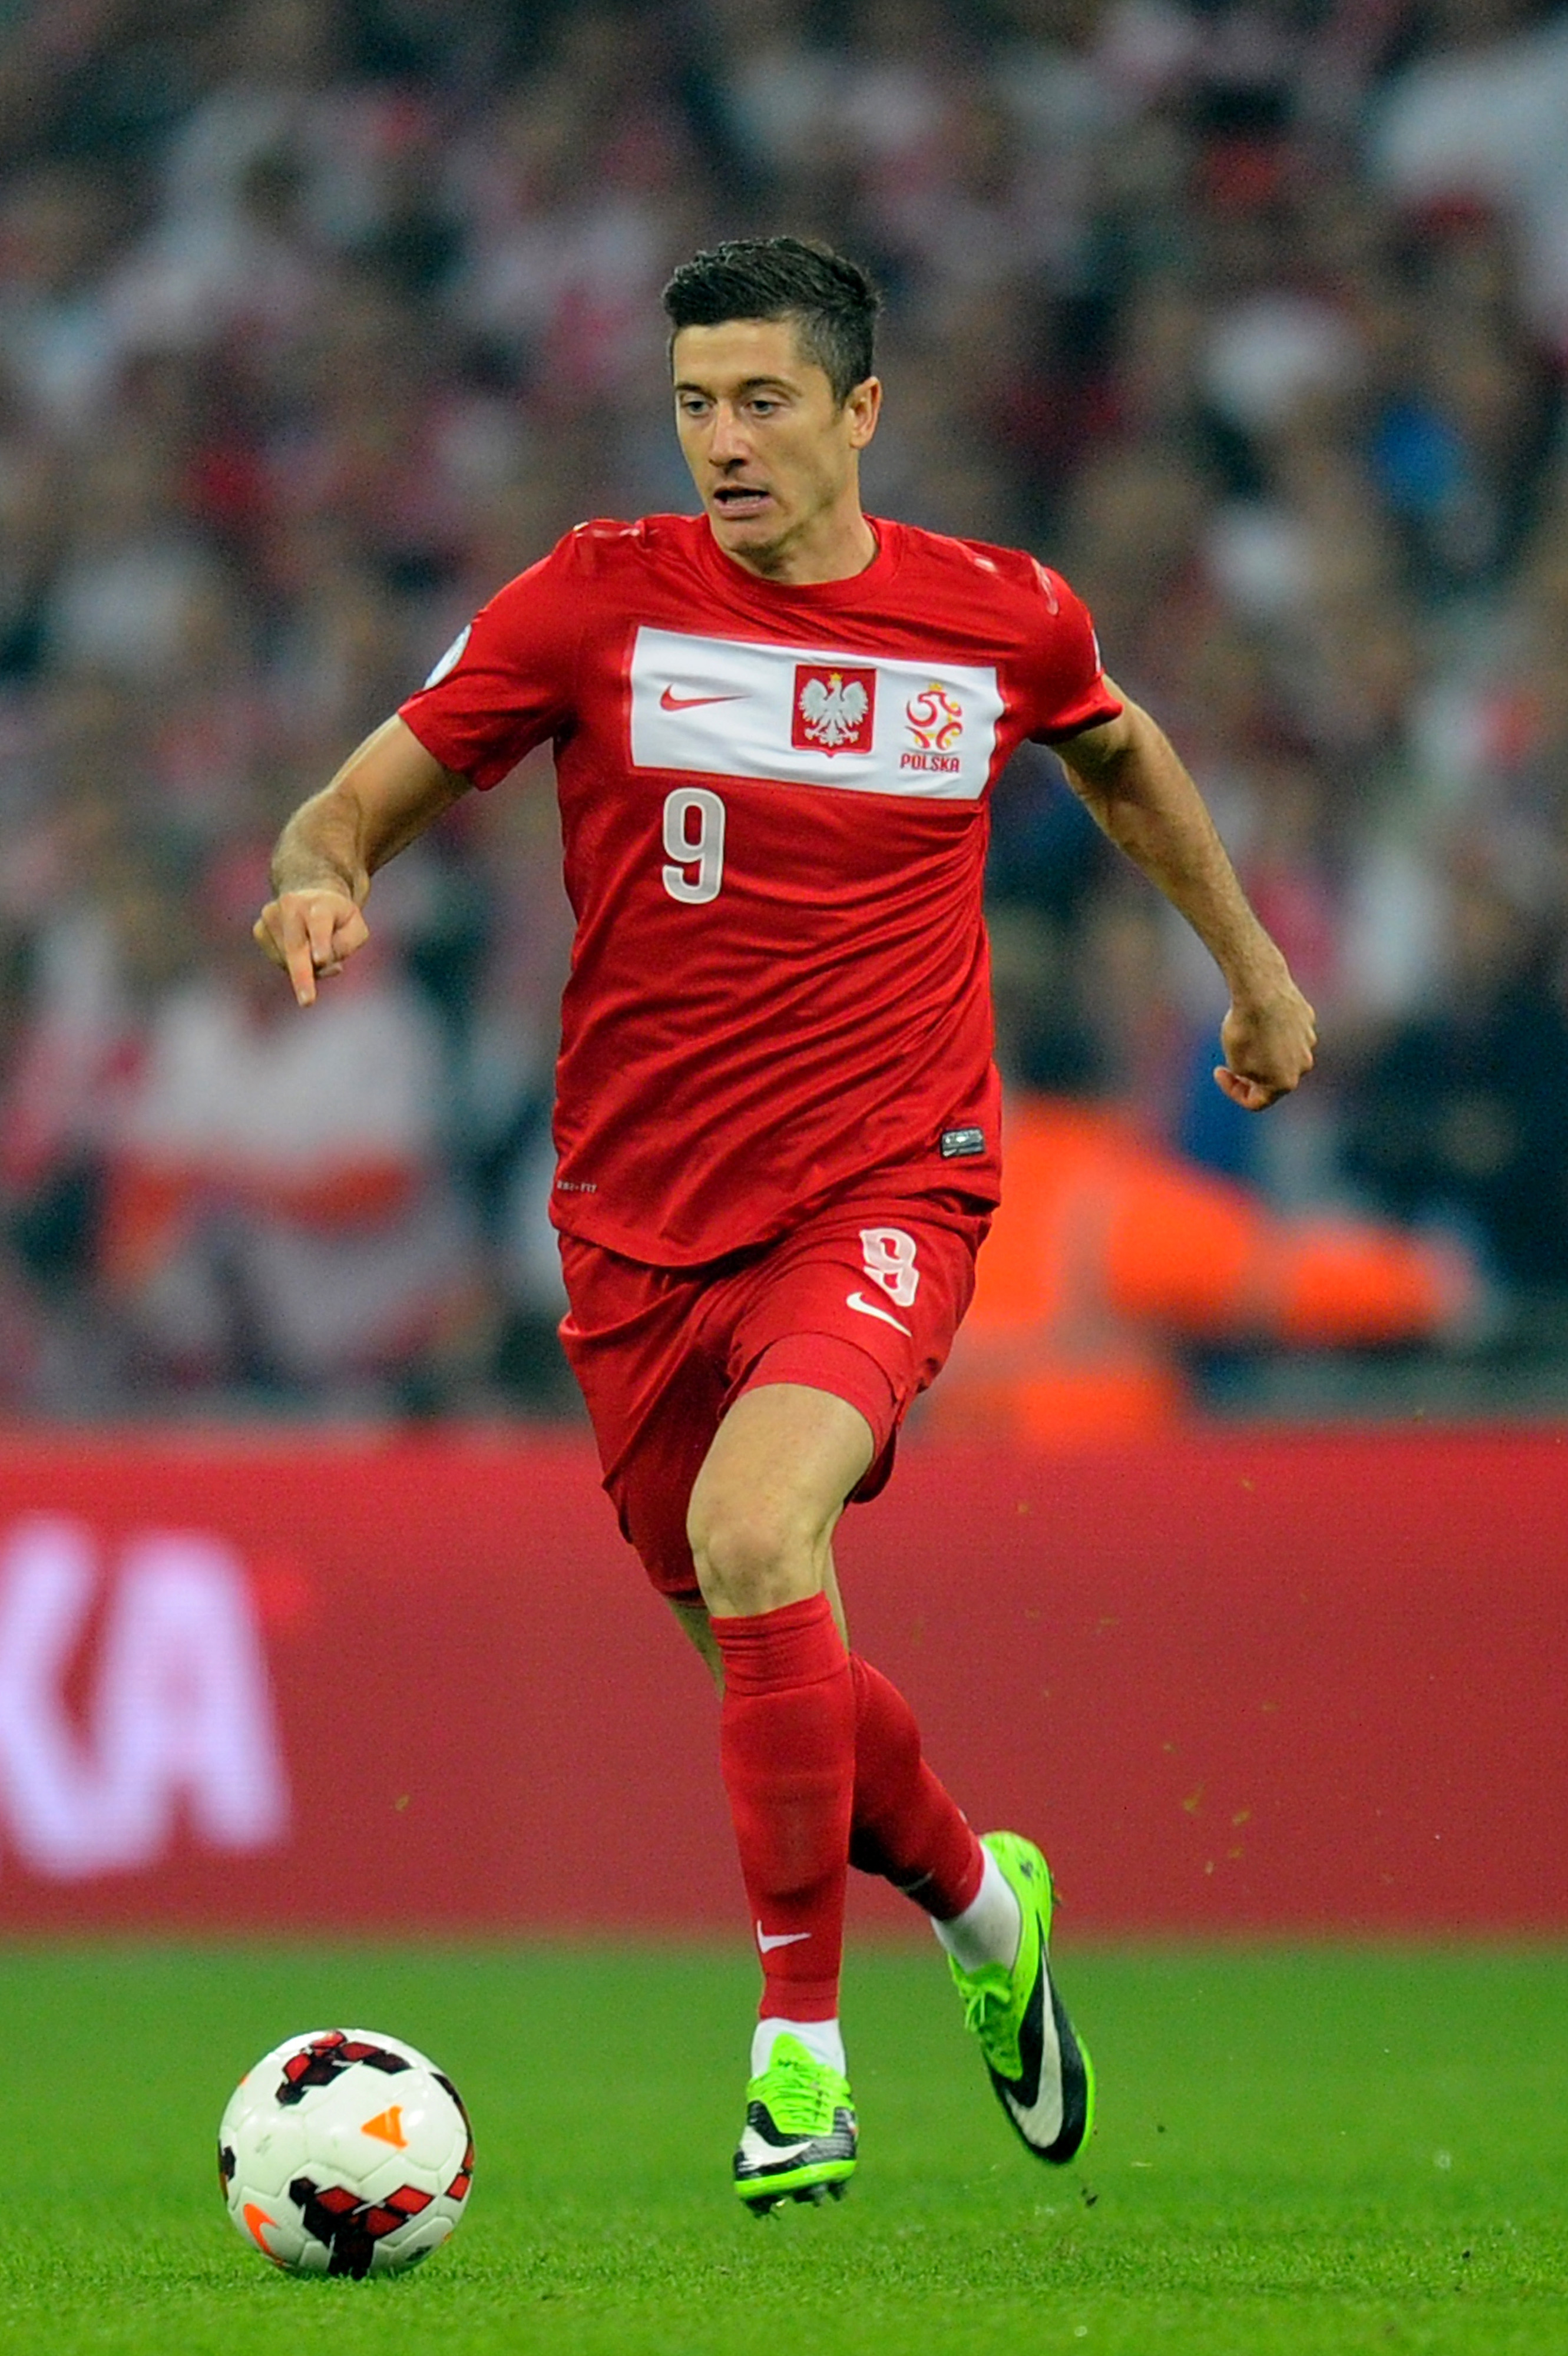 Poland vs. Germany live stream: How to watch Euro 2016 qualifying online